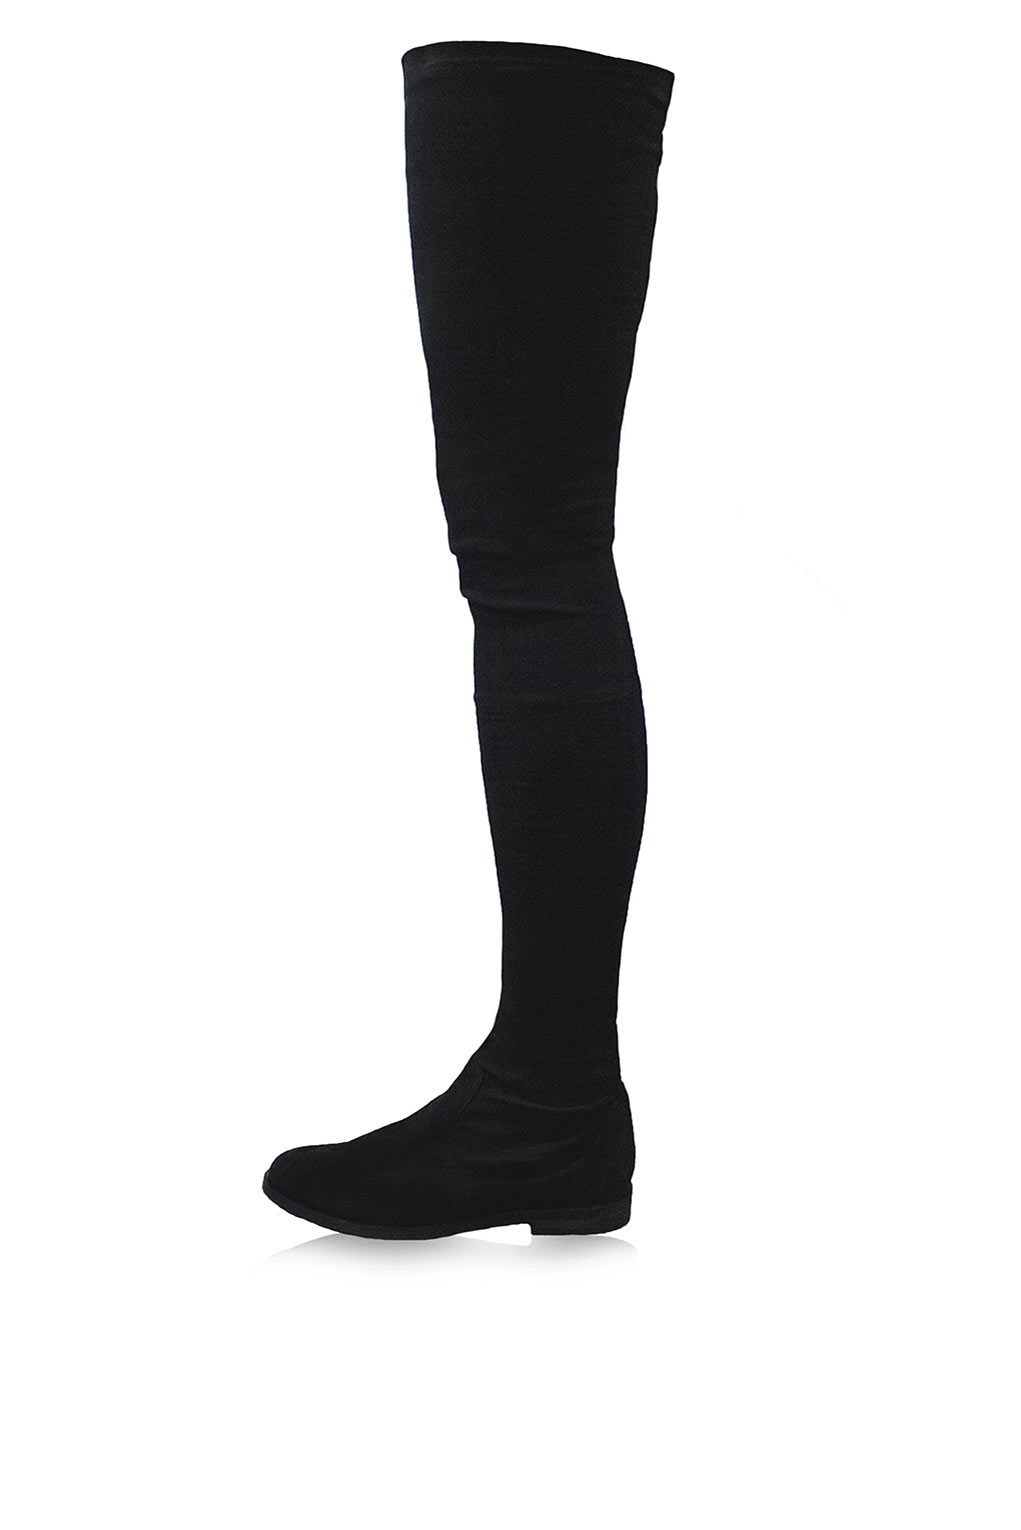 topshop vesper thigh high stretch suede boots by kurt